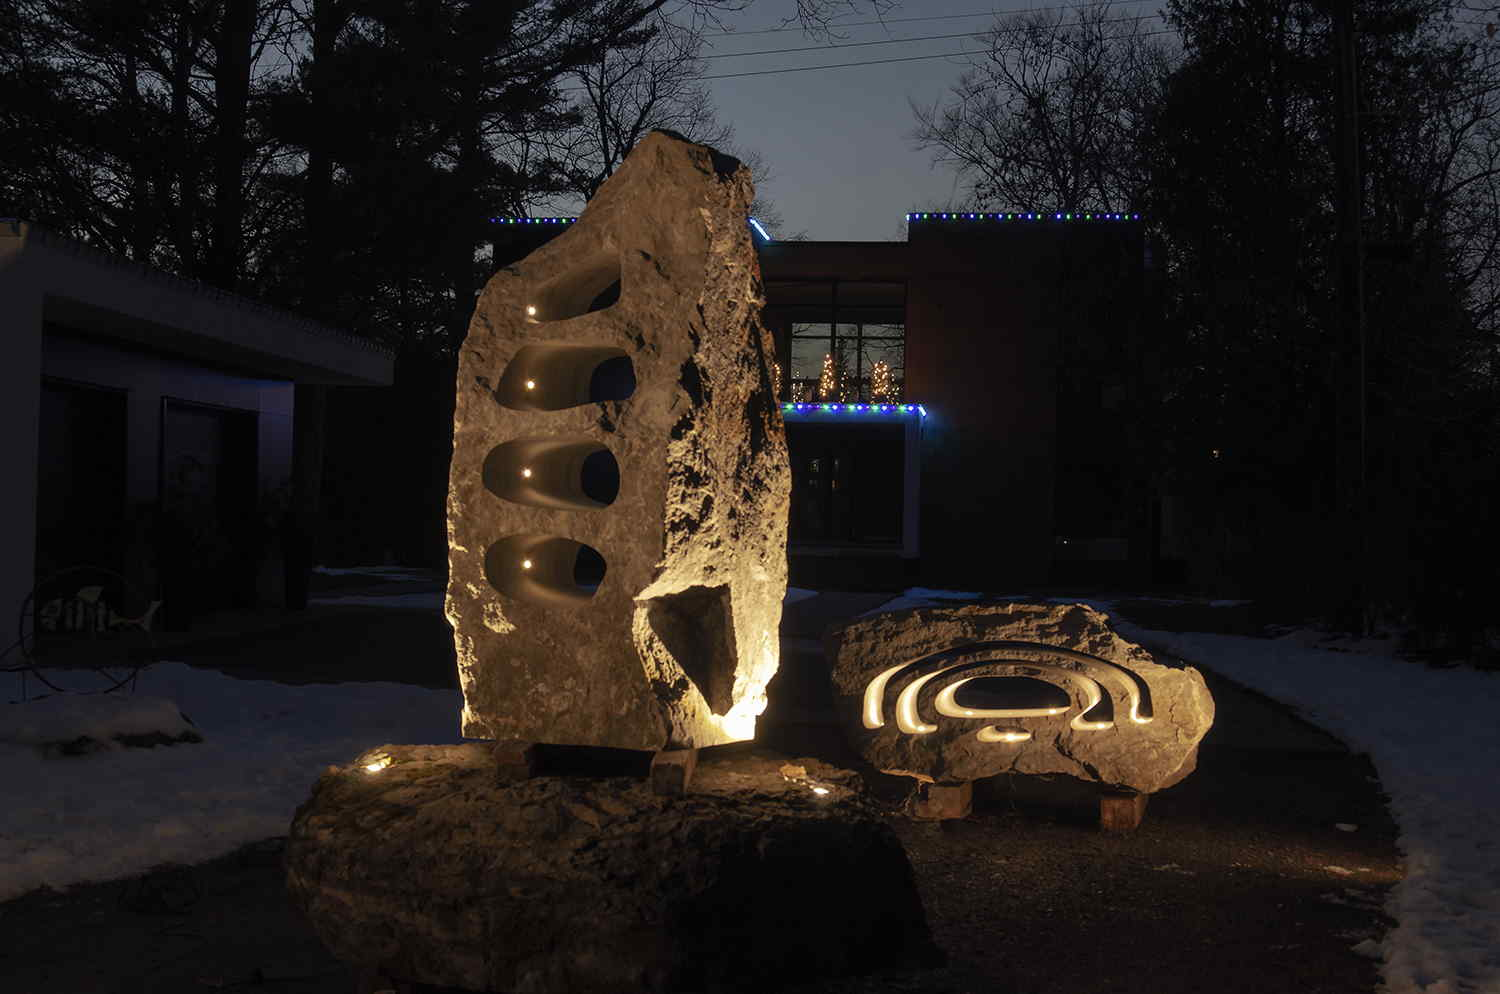 Stone LED sculpture lights by Rideau Works